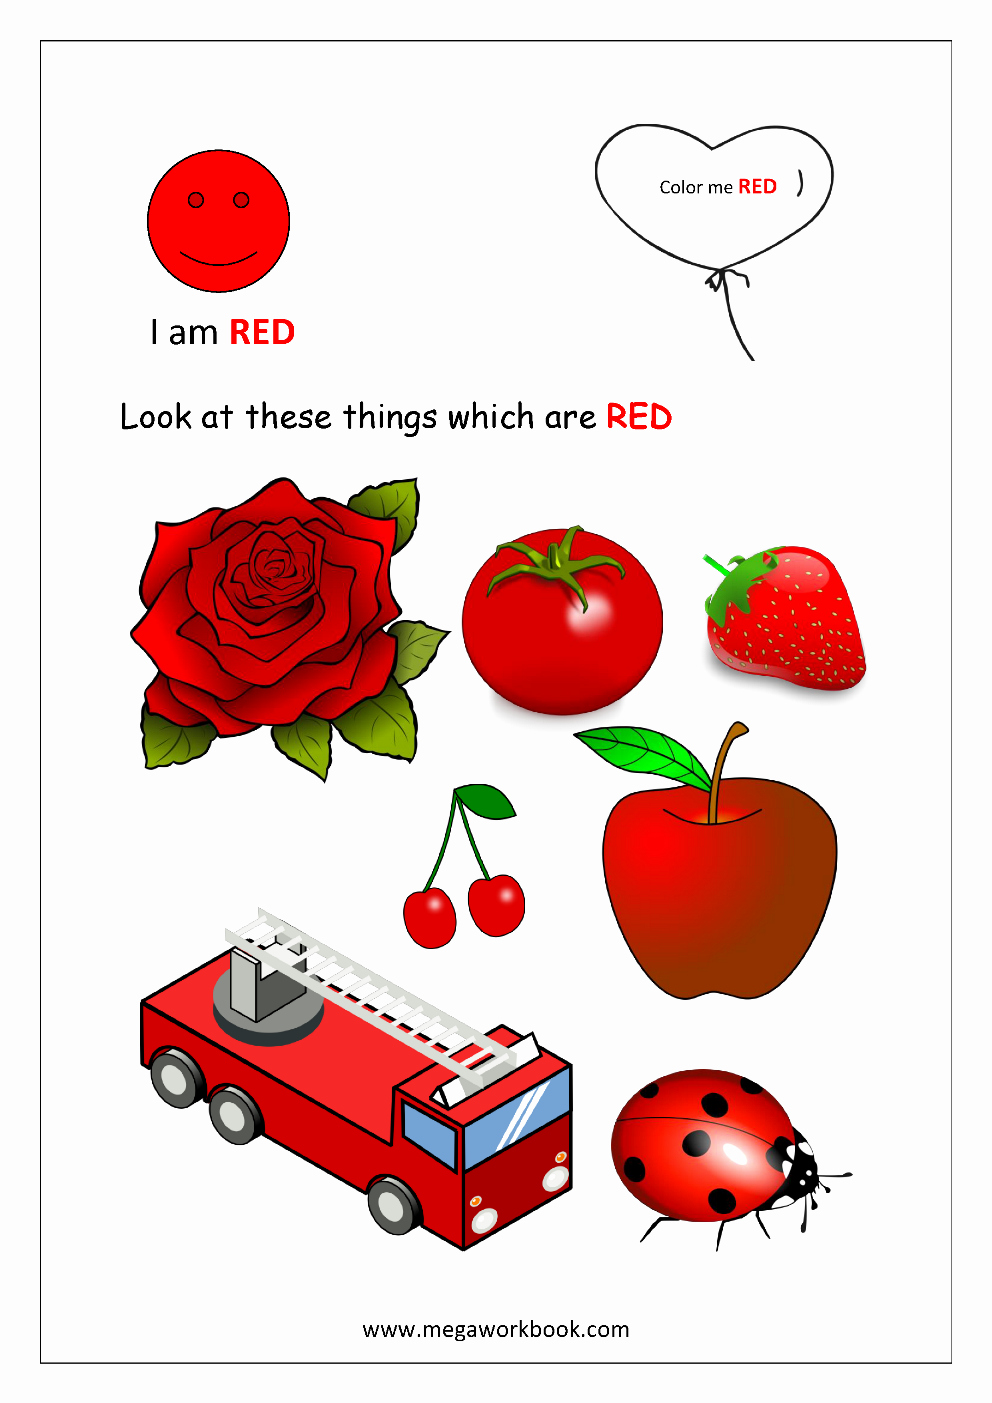 Color Red Worksheets for toddlers Inspirational Color Recognition Worksheets for Preschool Learn Basic